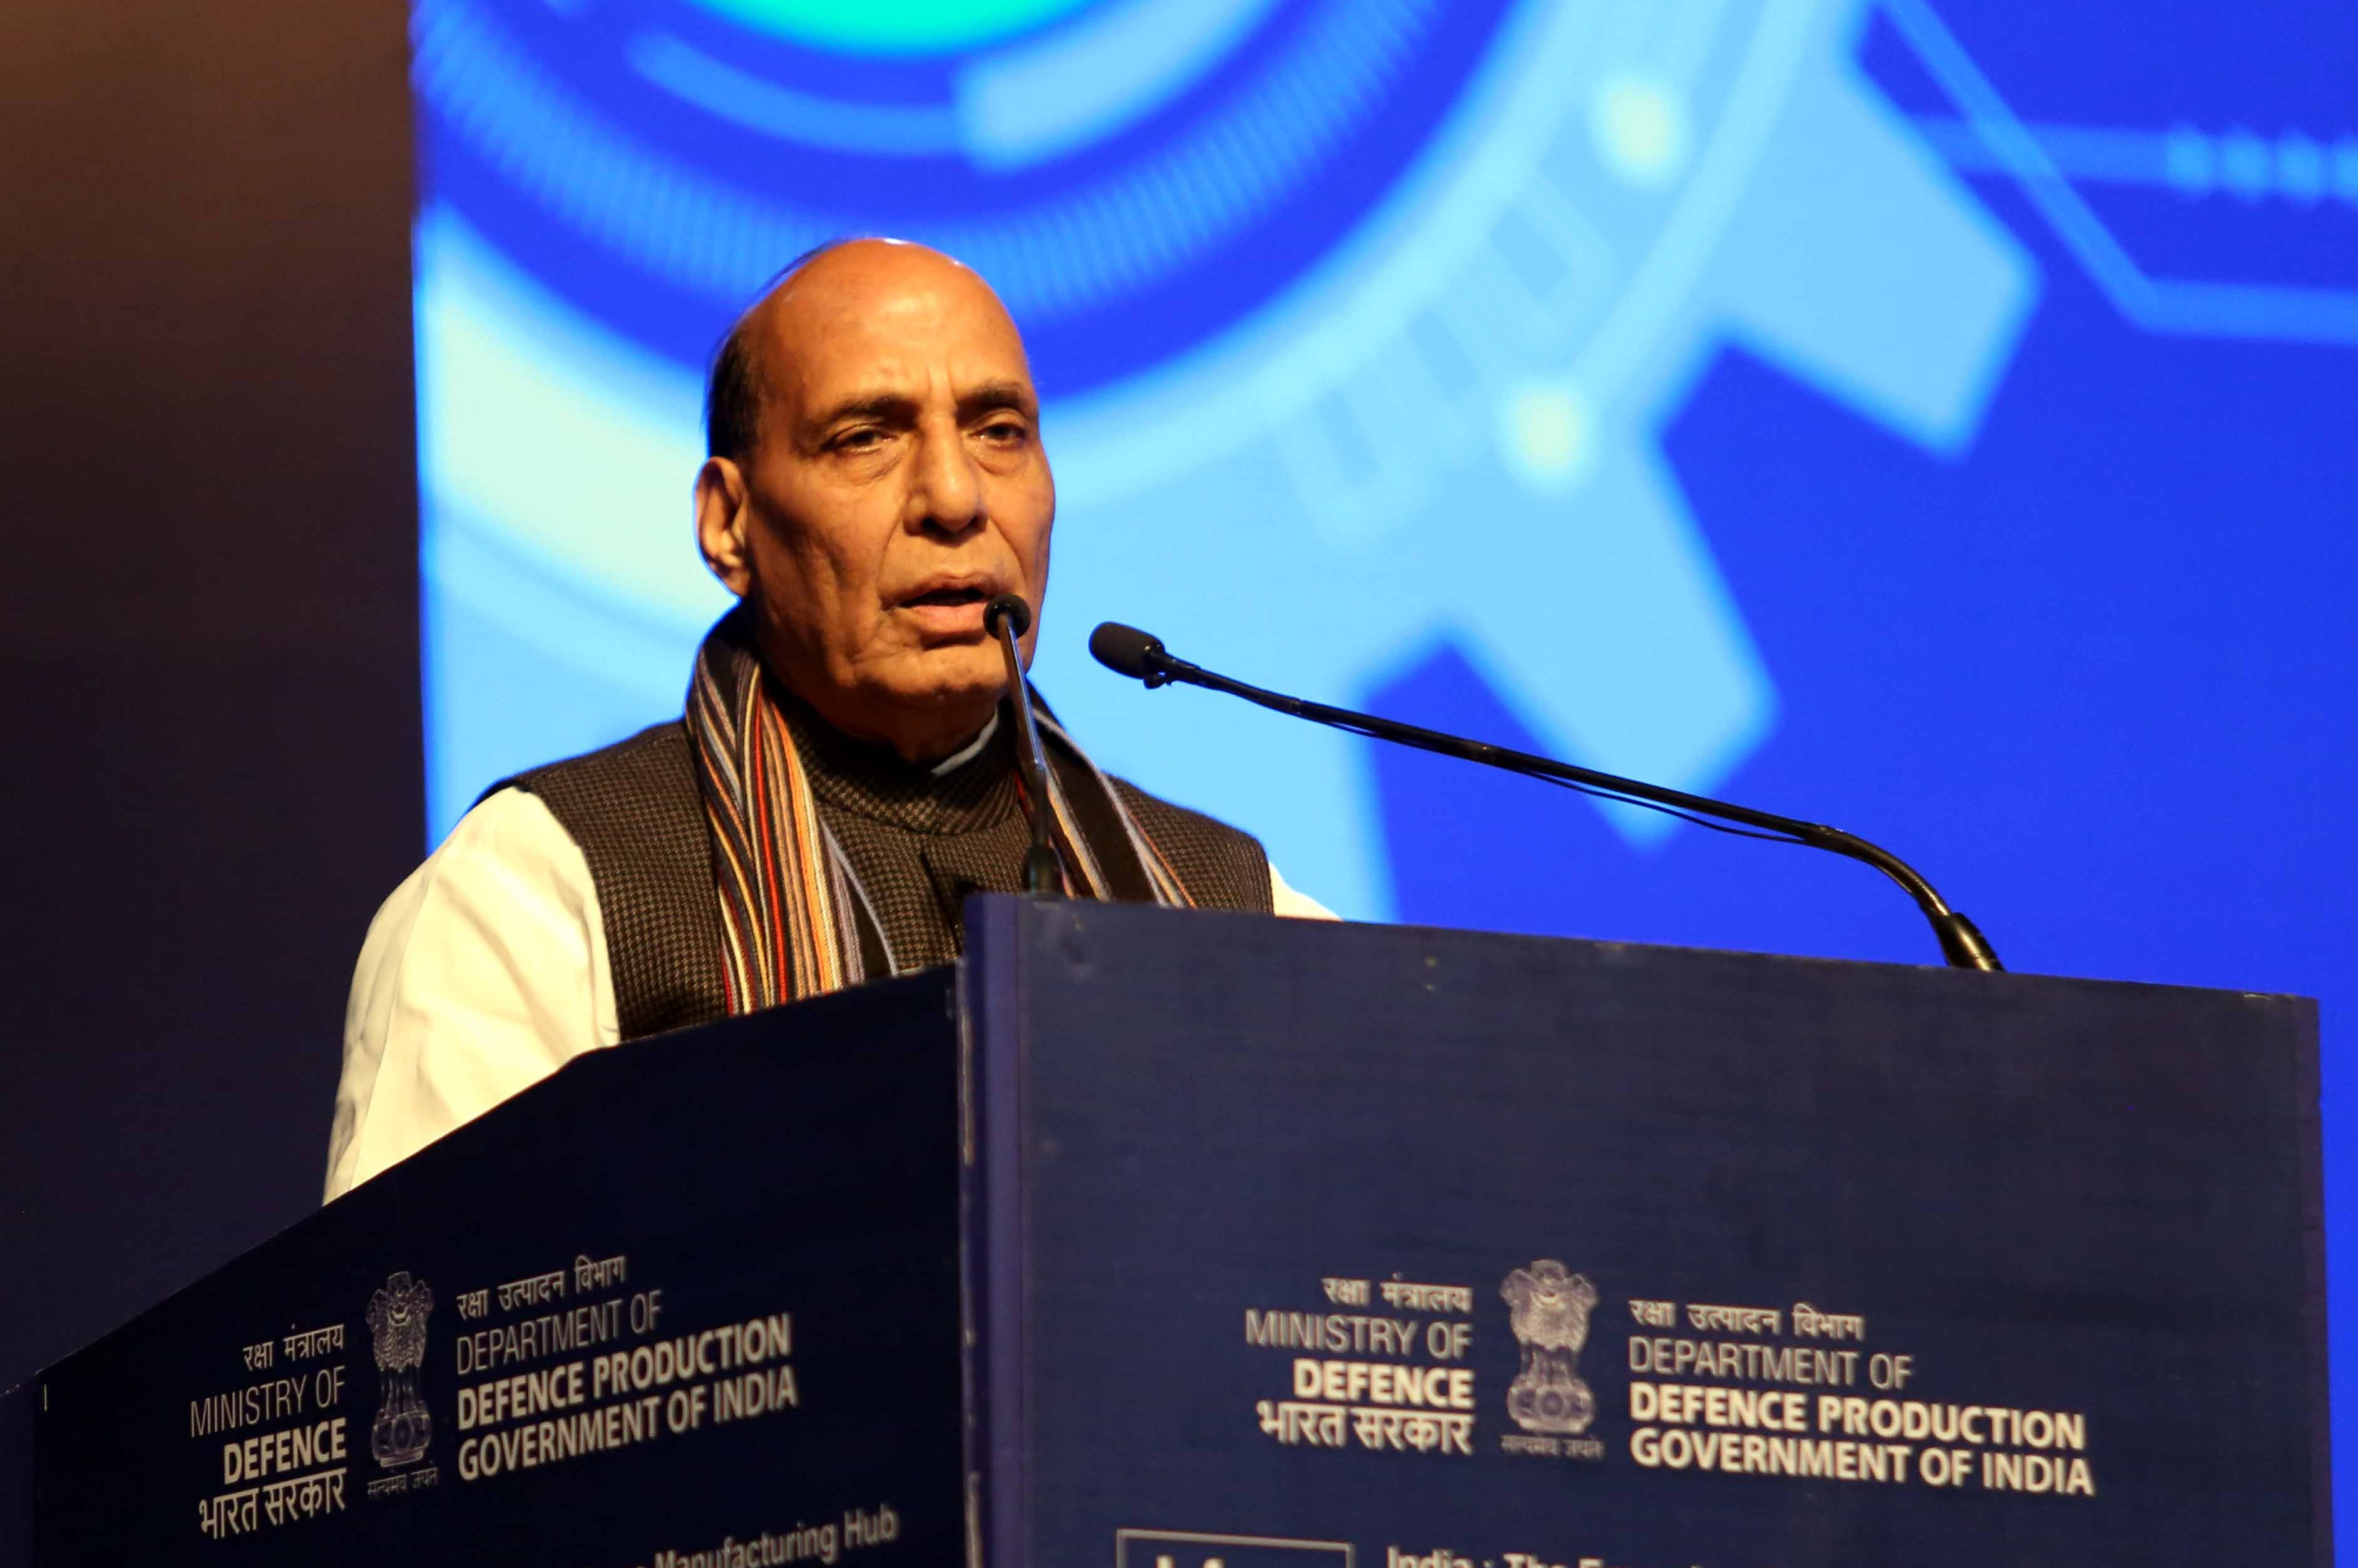 Loss of soldiers in Galwan valley is deeply painful: Rajnath Singh